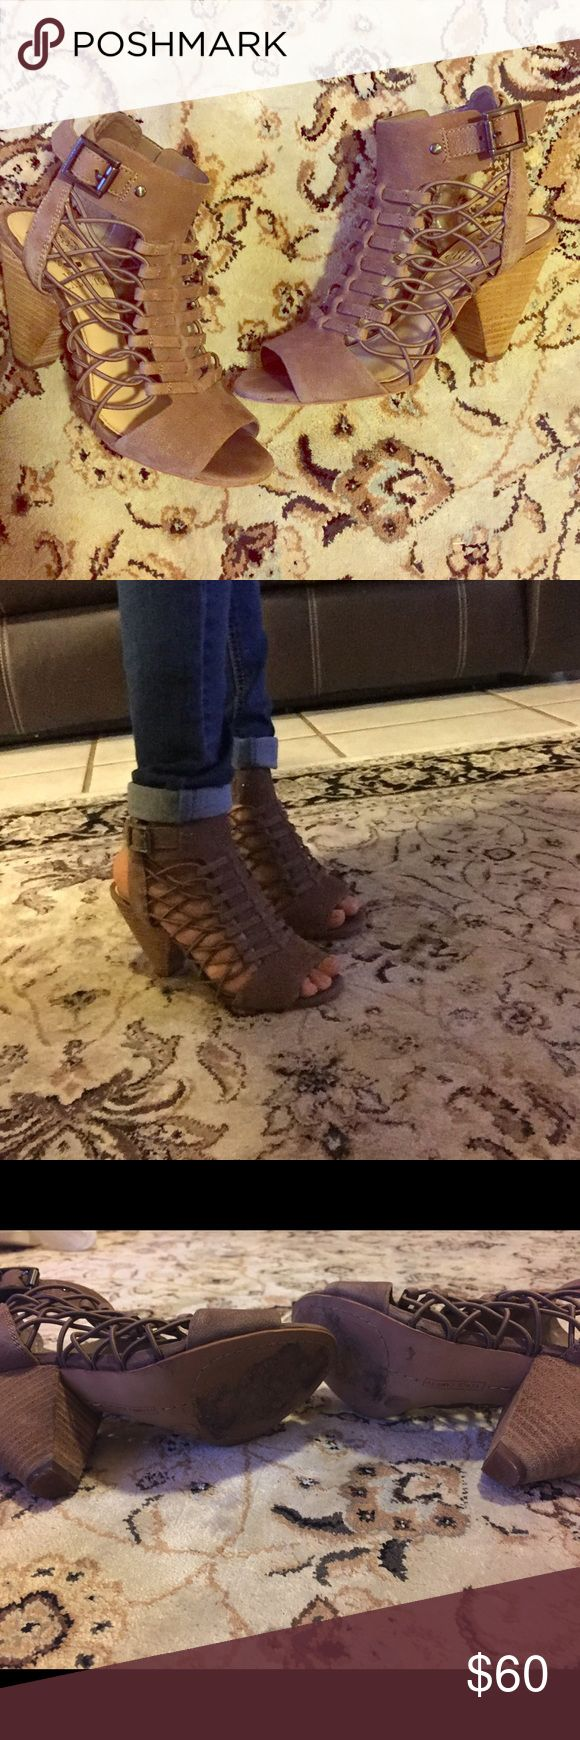 """Vince Camuto Evel Sandals Vince Camuto Evel leather sandal in dark beige with 3.5"""" heel Vince Camuto Shoes Sandals"""